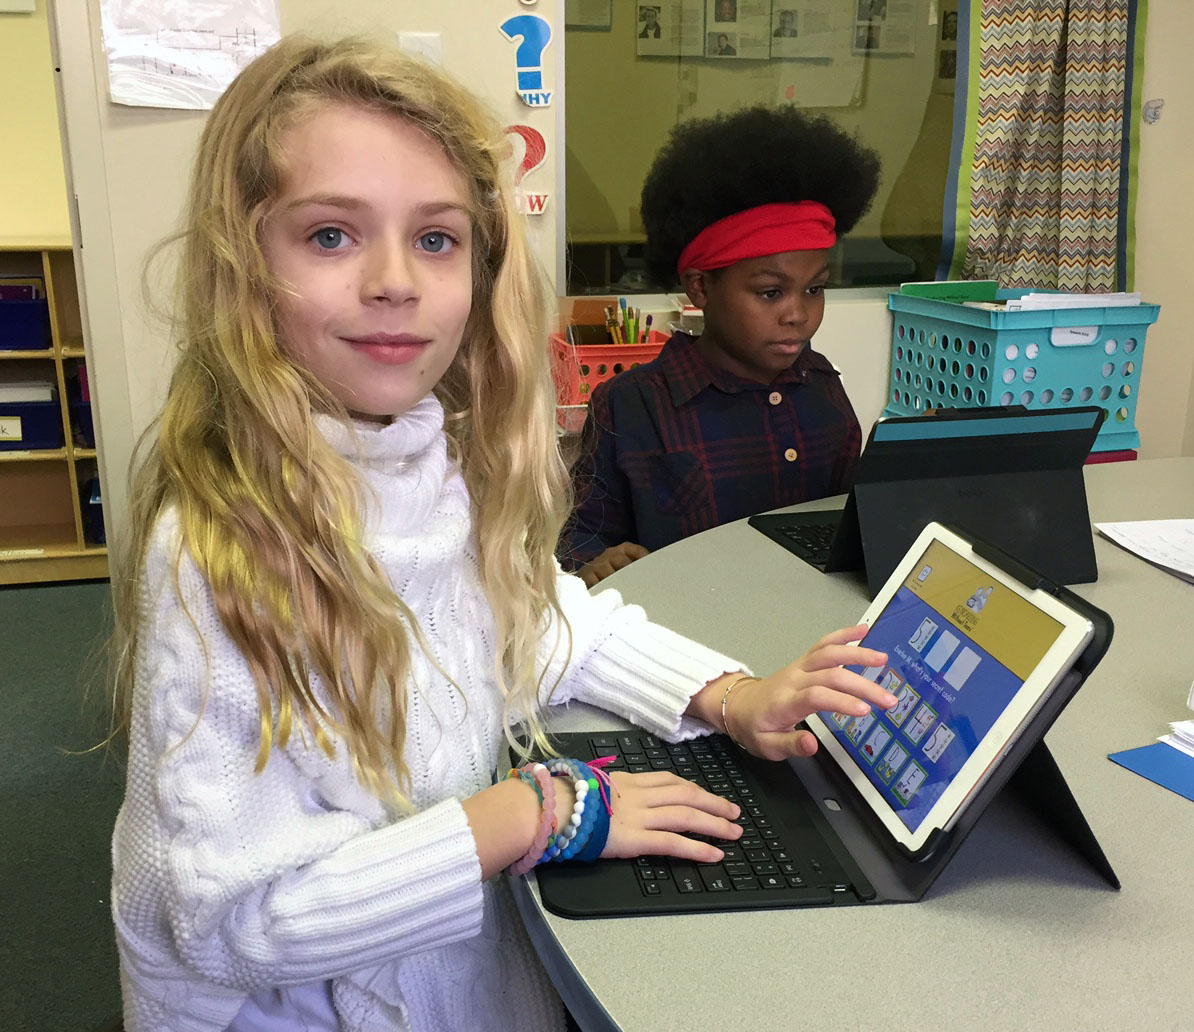 The Hill School ipads  to enhance and increase the use of access to assistive technology for learning disabled students.